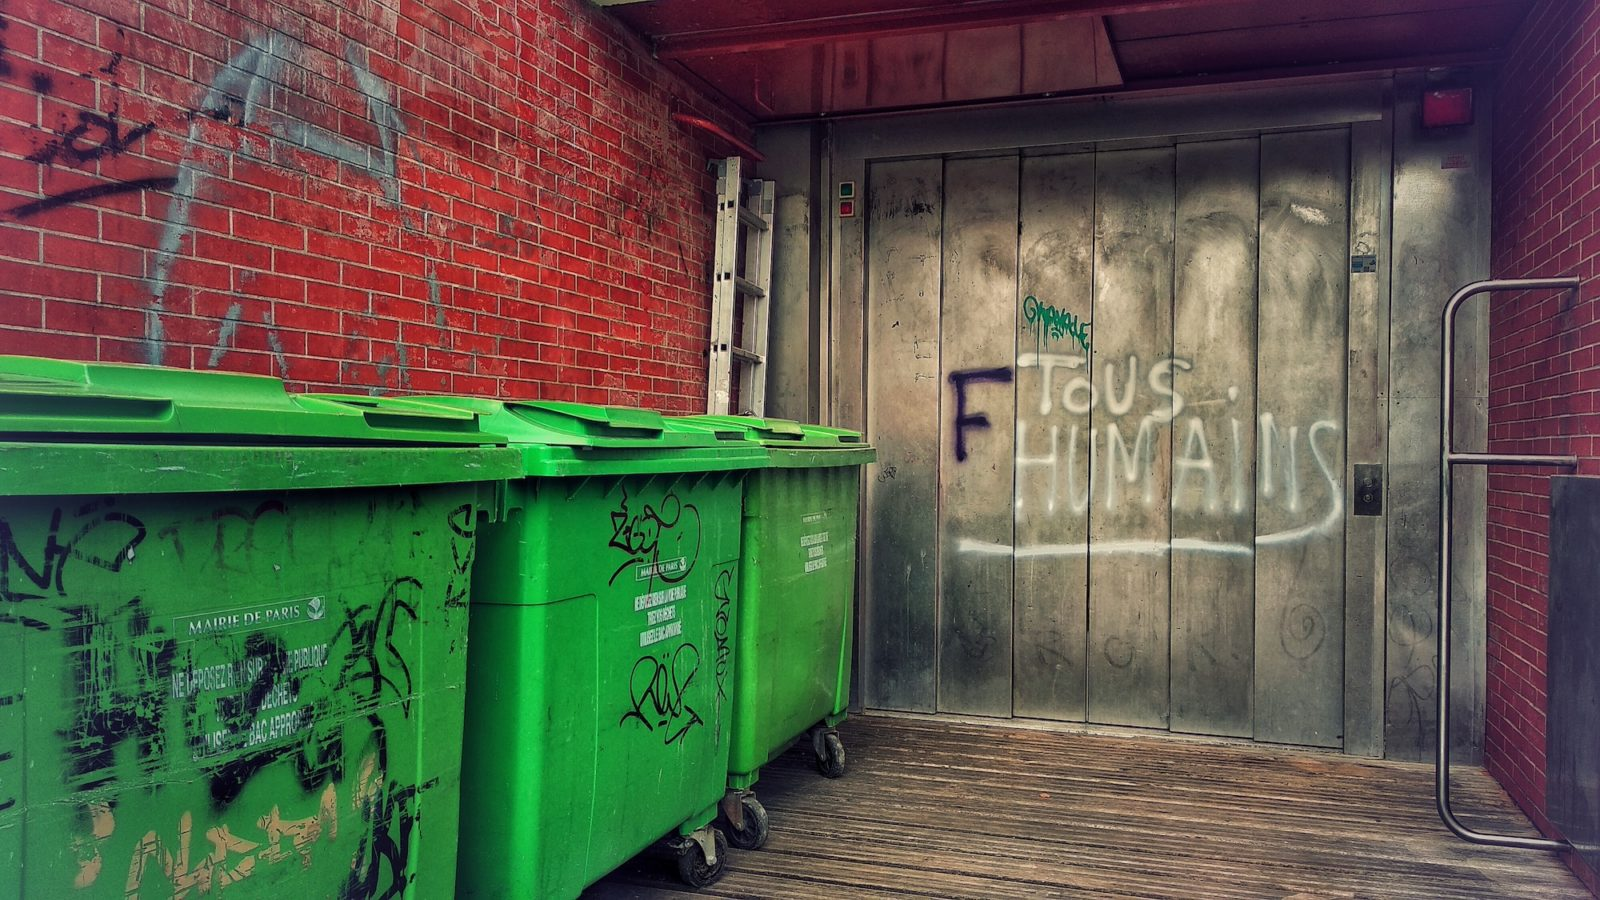 HiP Paris Blog explores France's plastic ban on cups, straws and all single use plastic to reduce waste which applies to everyone, because as the graffiti reads on the wall here next to the large green bins, 'we are all human'.